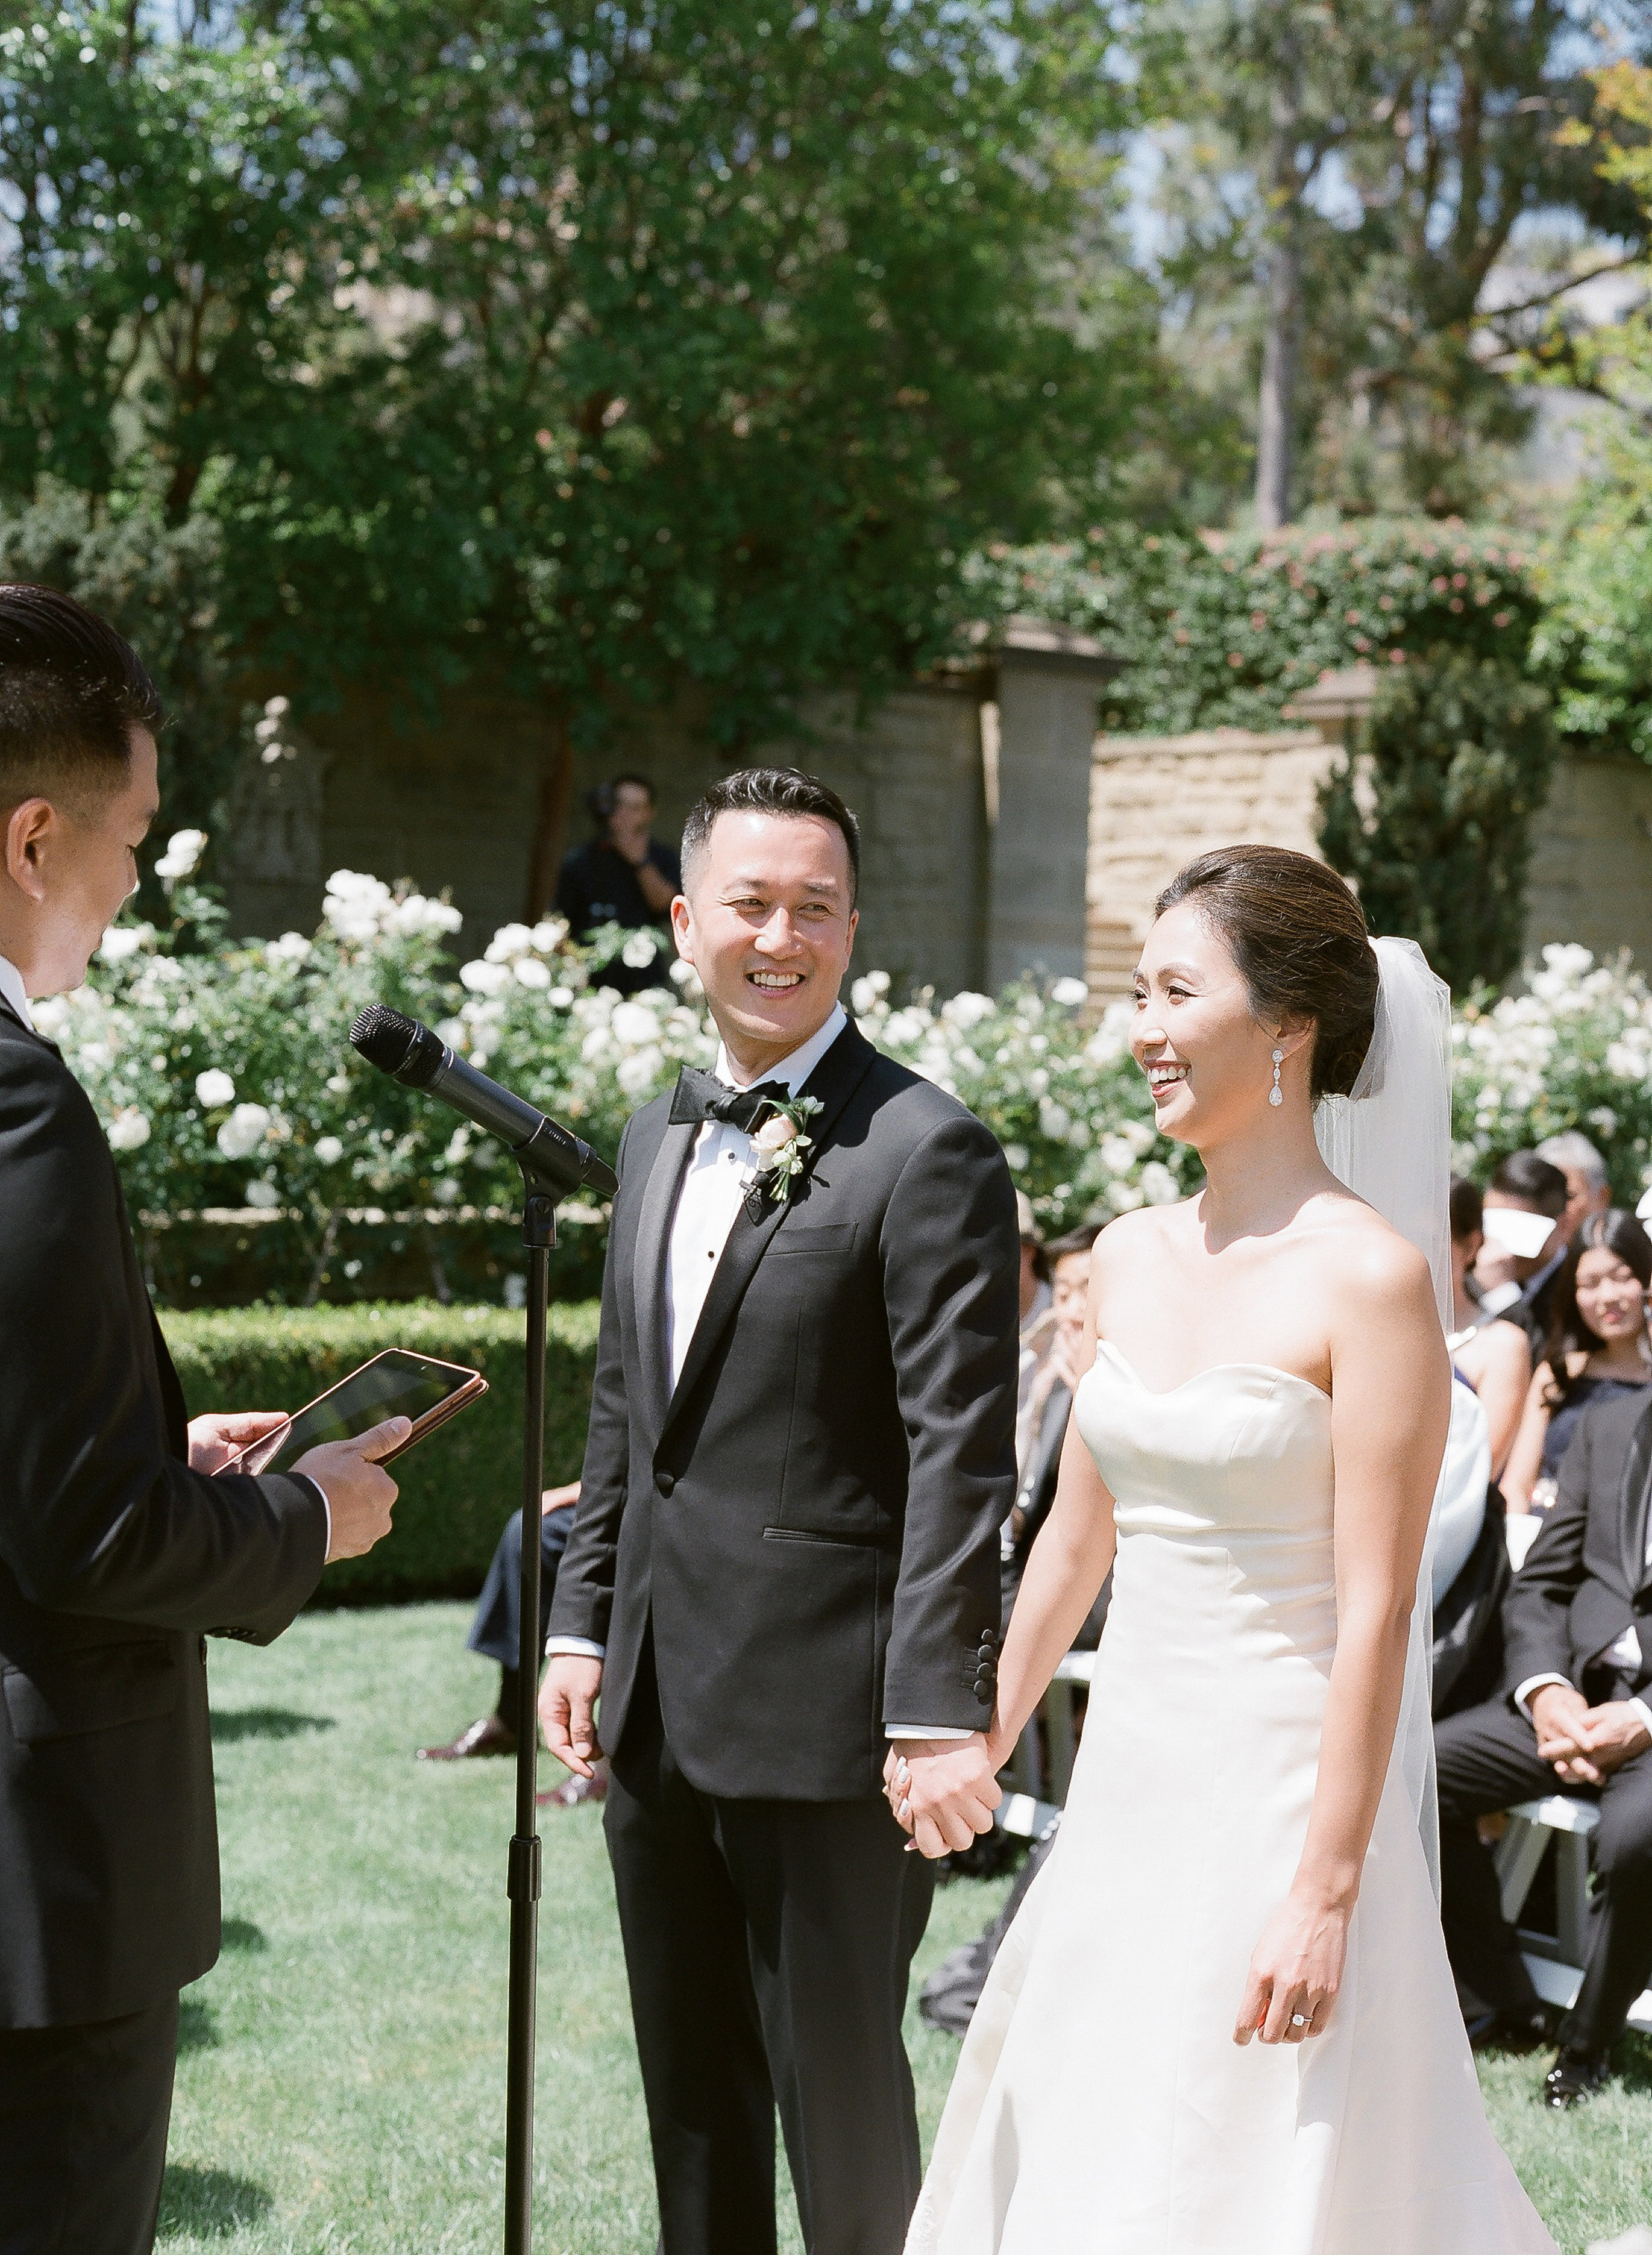 Greystone-Mansion-Wedding-Kristina-Adams-375.jpg